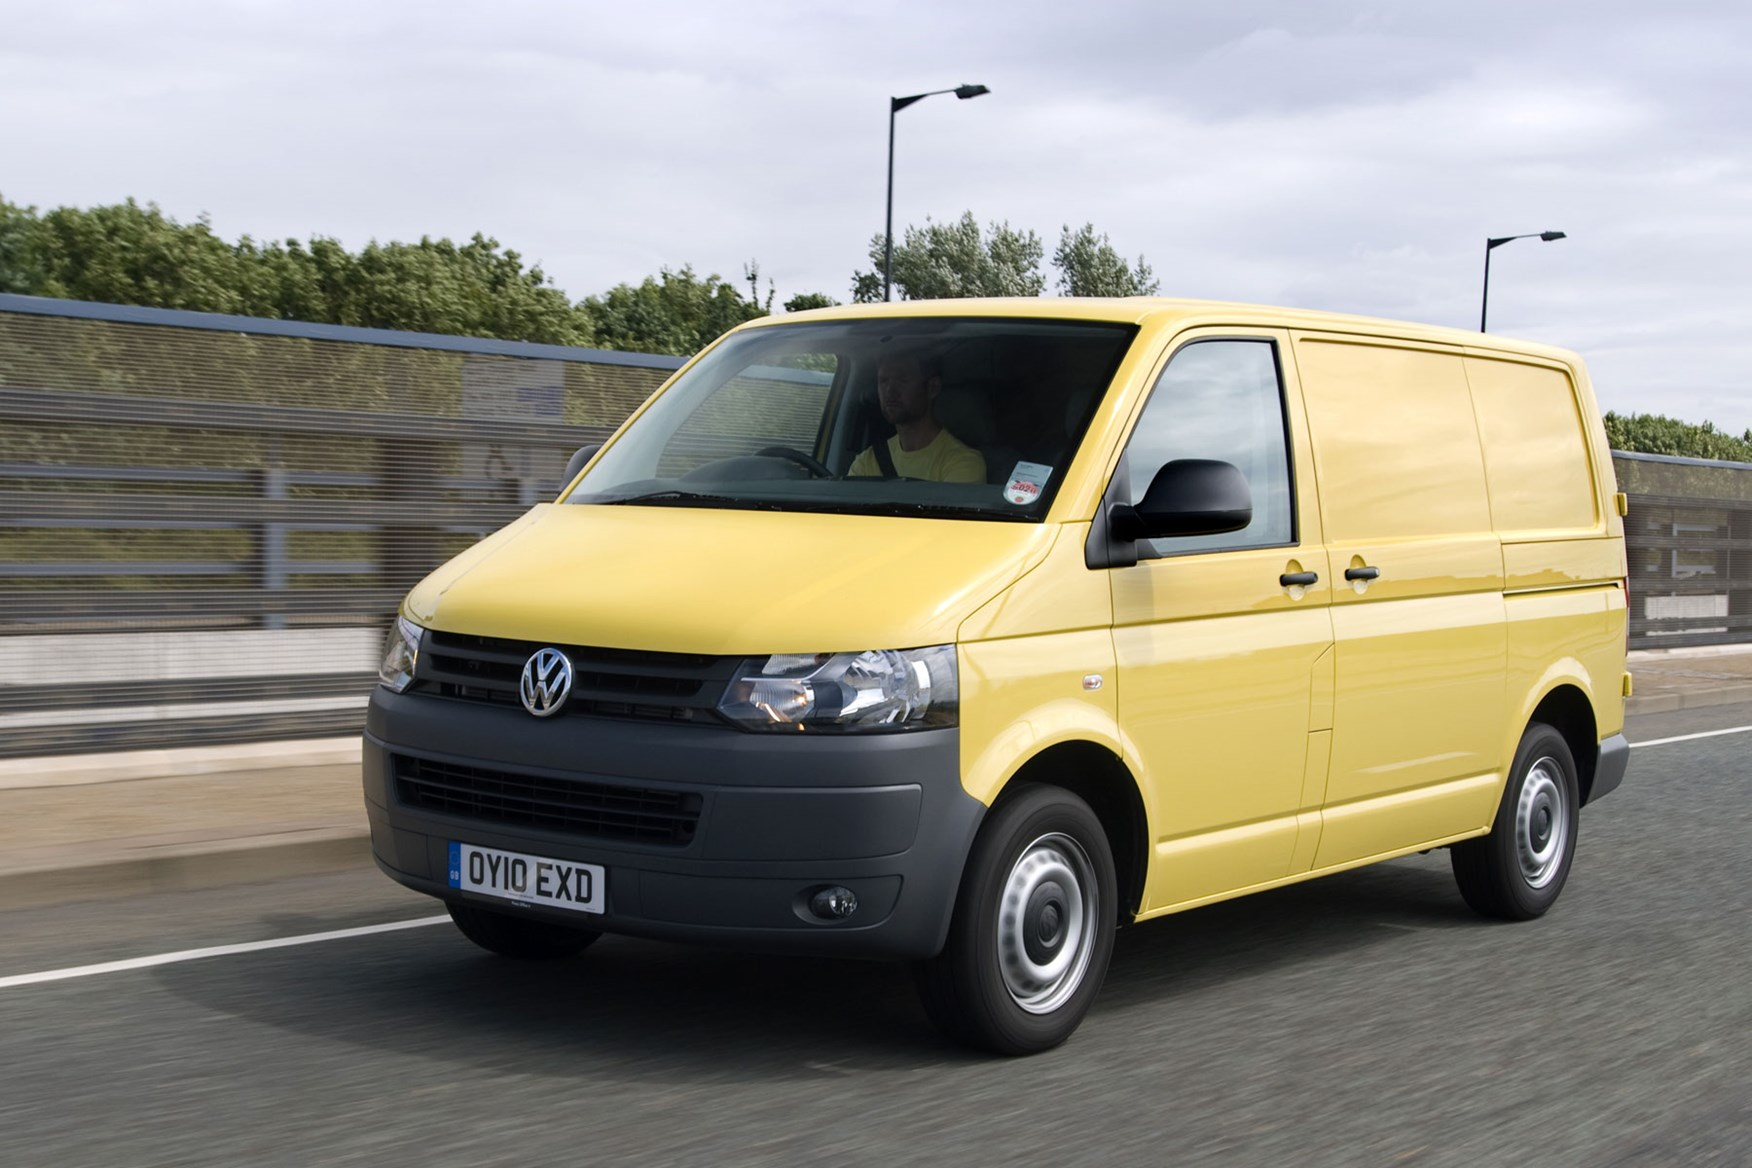 VW Transporter T5 (2010-2015) front view driving